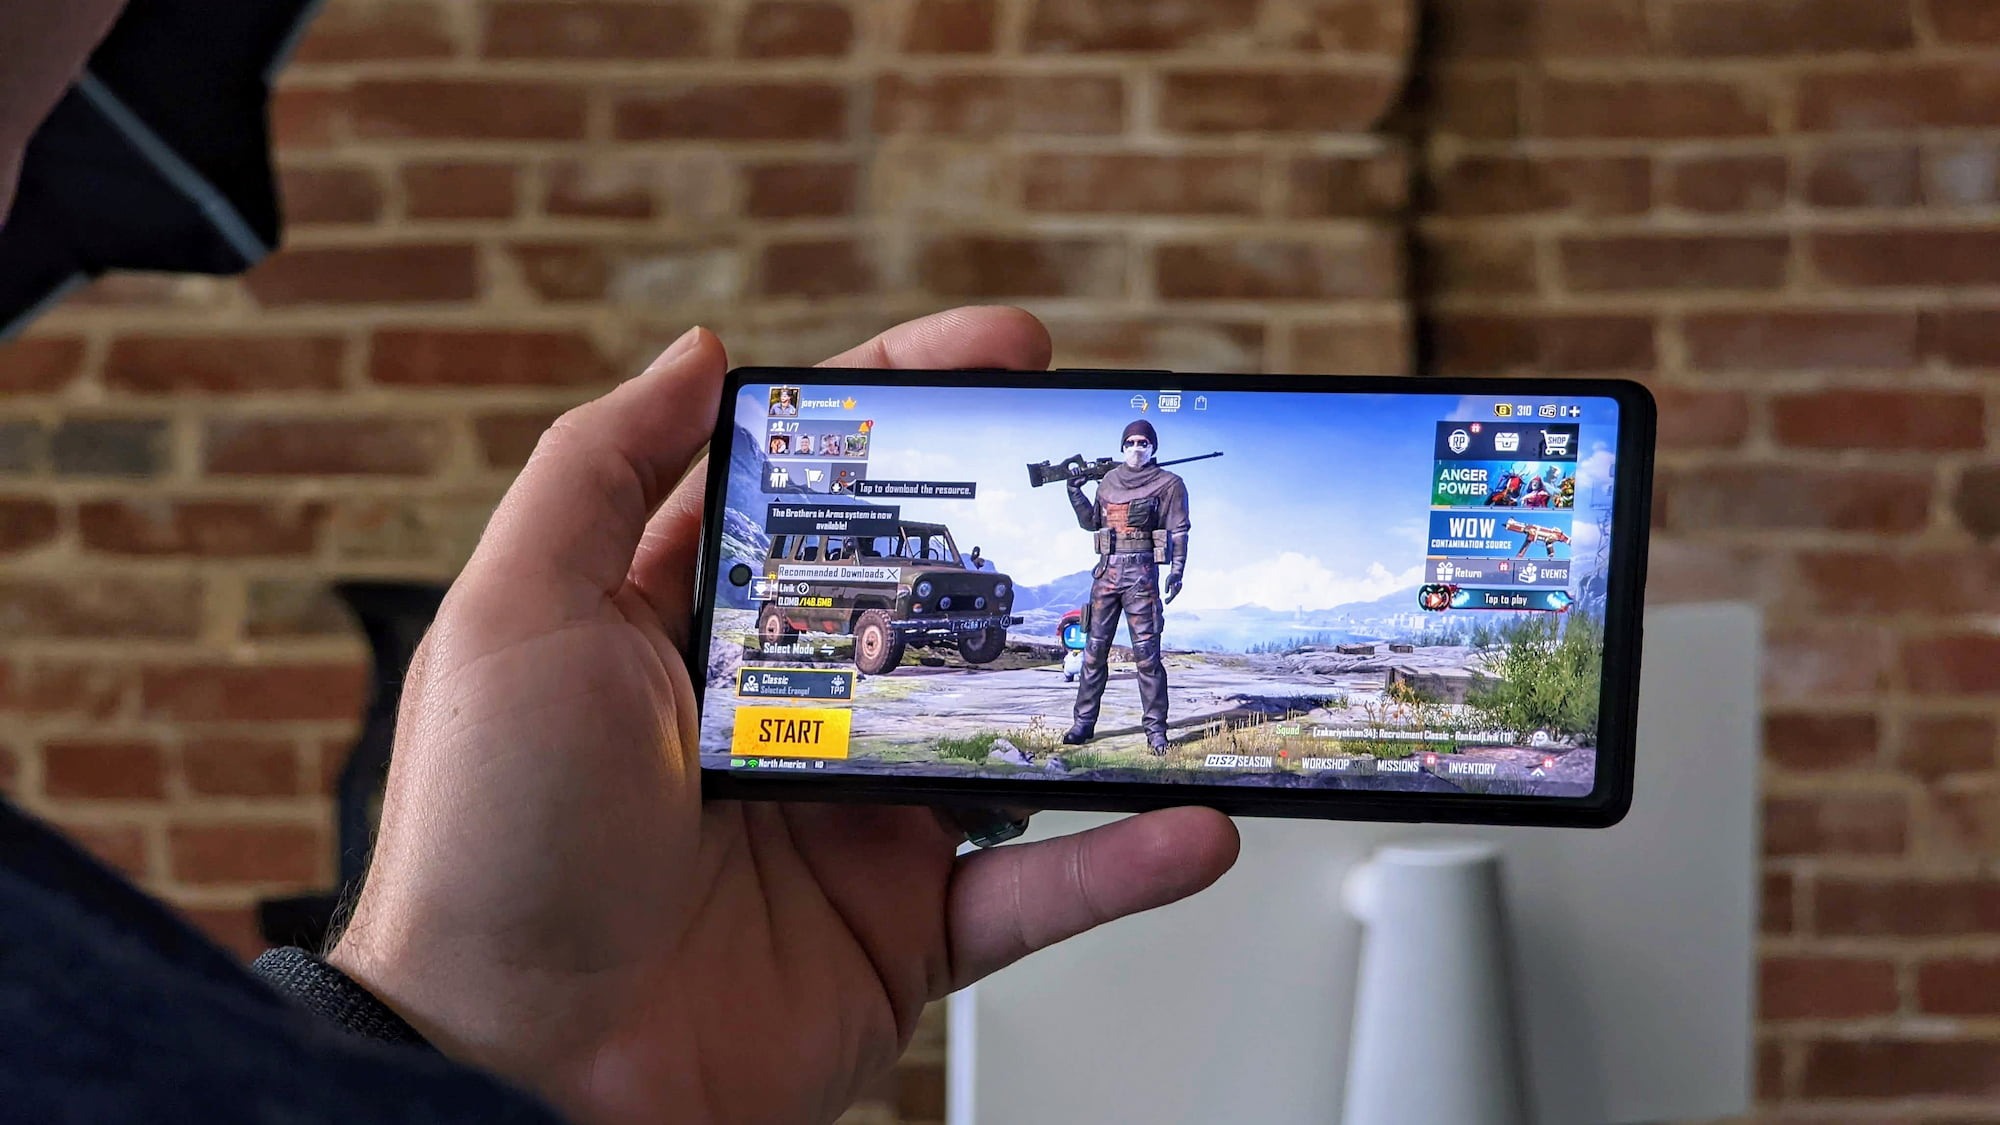 Pixel 6 and Pixel 6 Pro early benchmarks reveal highest GPU scores for an Android flagship - Chrome Unboxed : We're only a day into the public, post-embargo cycle for the Pixel 6 and Pixel 6 Pro and, so far, the impressions are quite glowing. For Google, that's a good thing as their phones have had a tendency over the years to be a bit less than impressive to the fla…  | Tranquility 國際社群